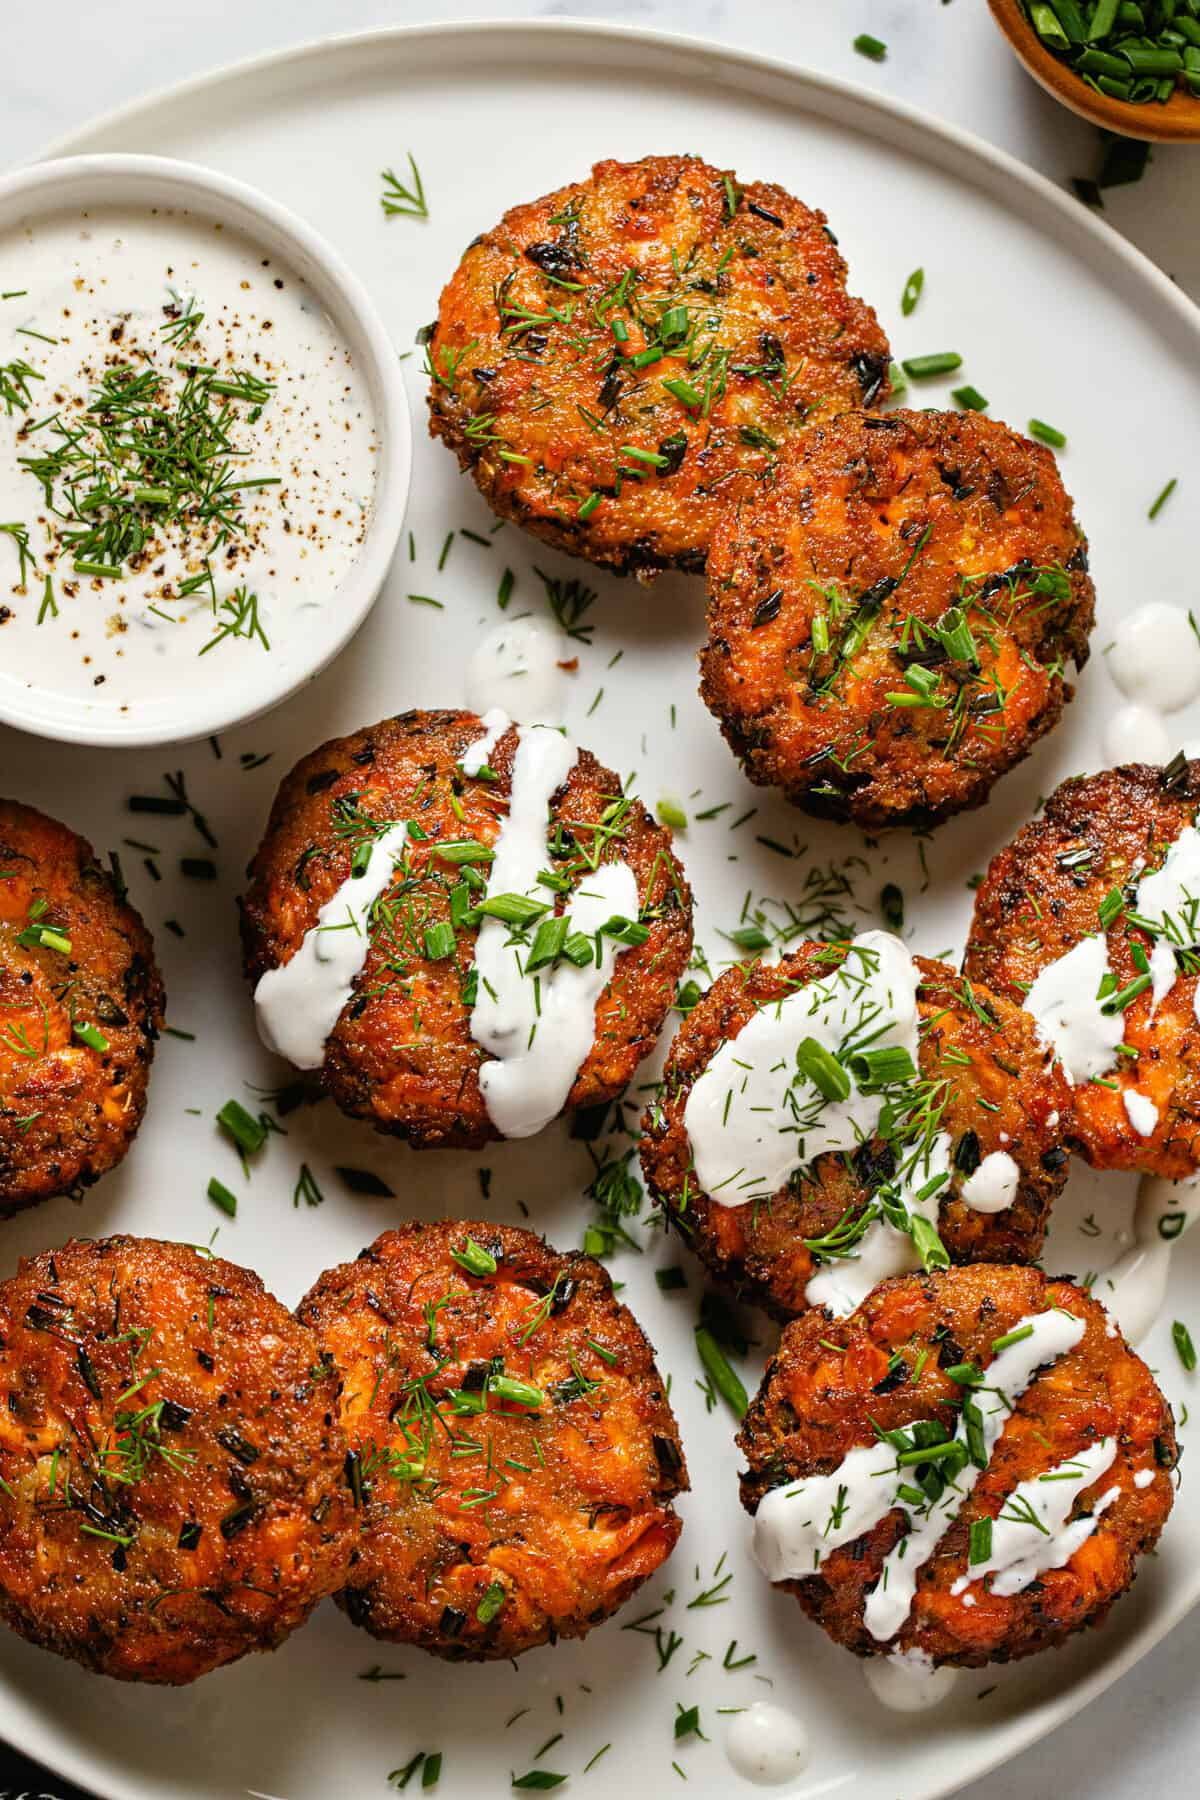 White plate filled with homemade salmon cakes garnished with fresh dill